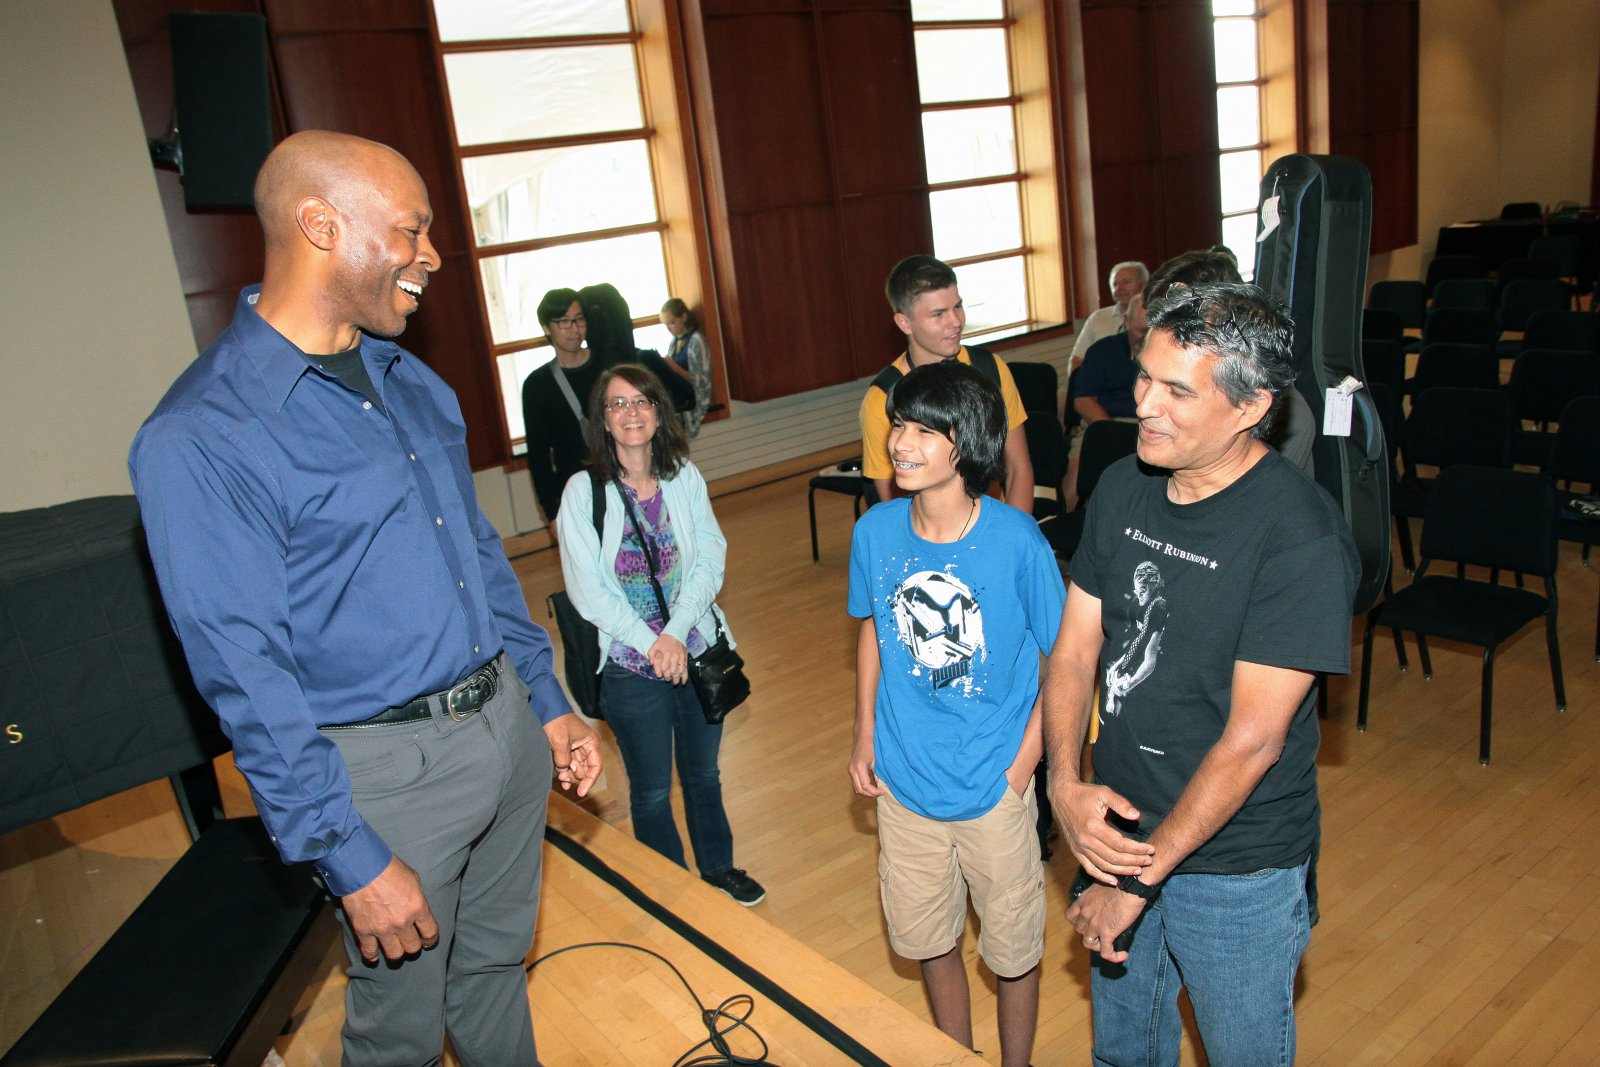 Kevin Eubanks enjoyed meeting and talking to fans at the 2017 Wilson Center Guitar Festival